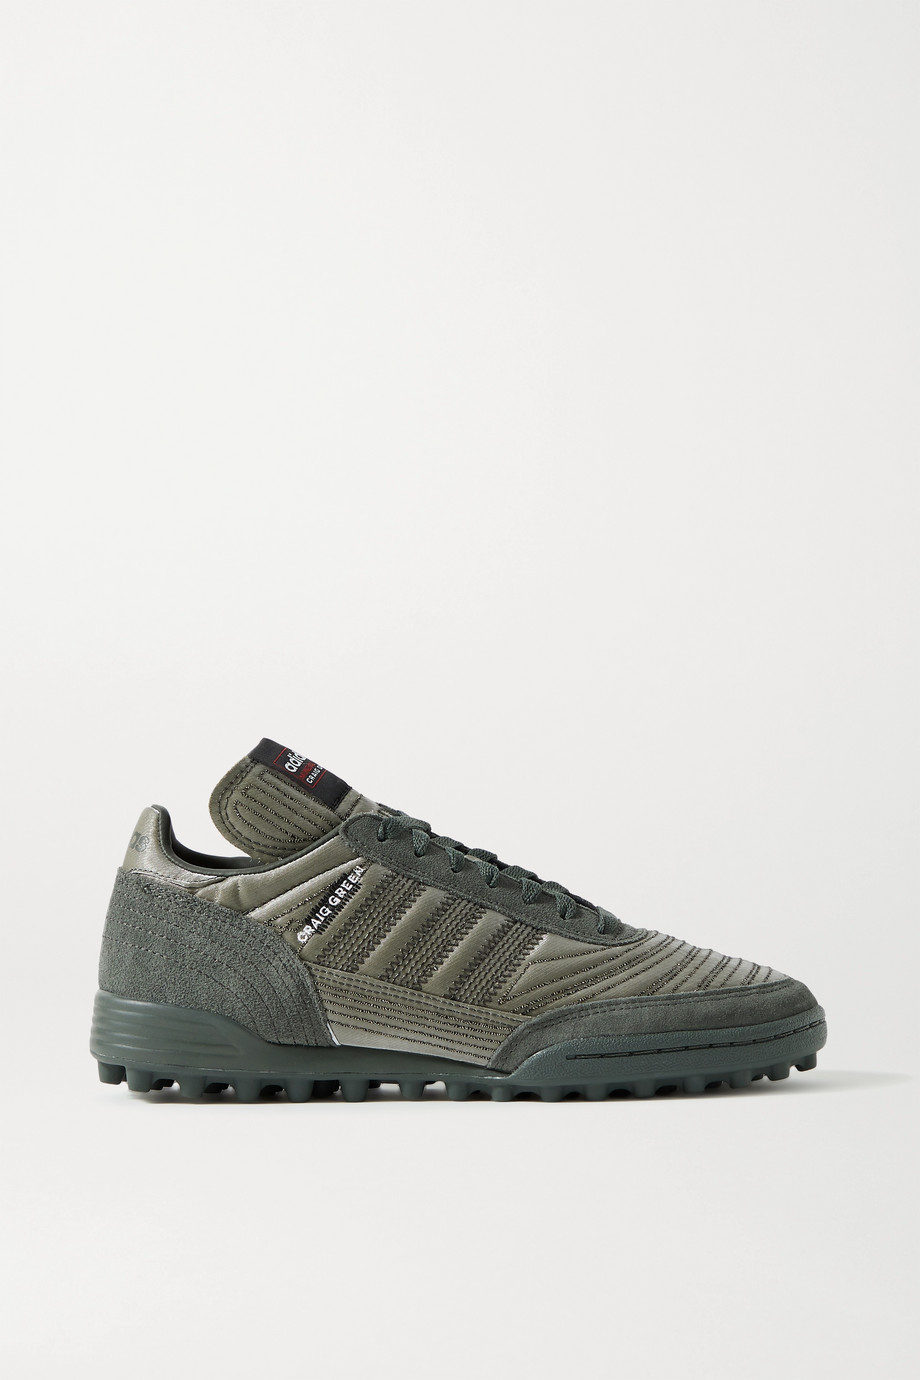 adidas Originals + Craig Green Kontuur III embroidered reflective shell and suede sneakers